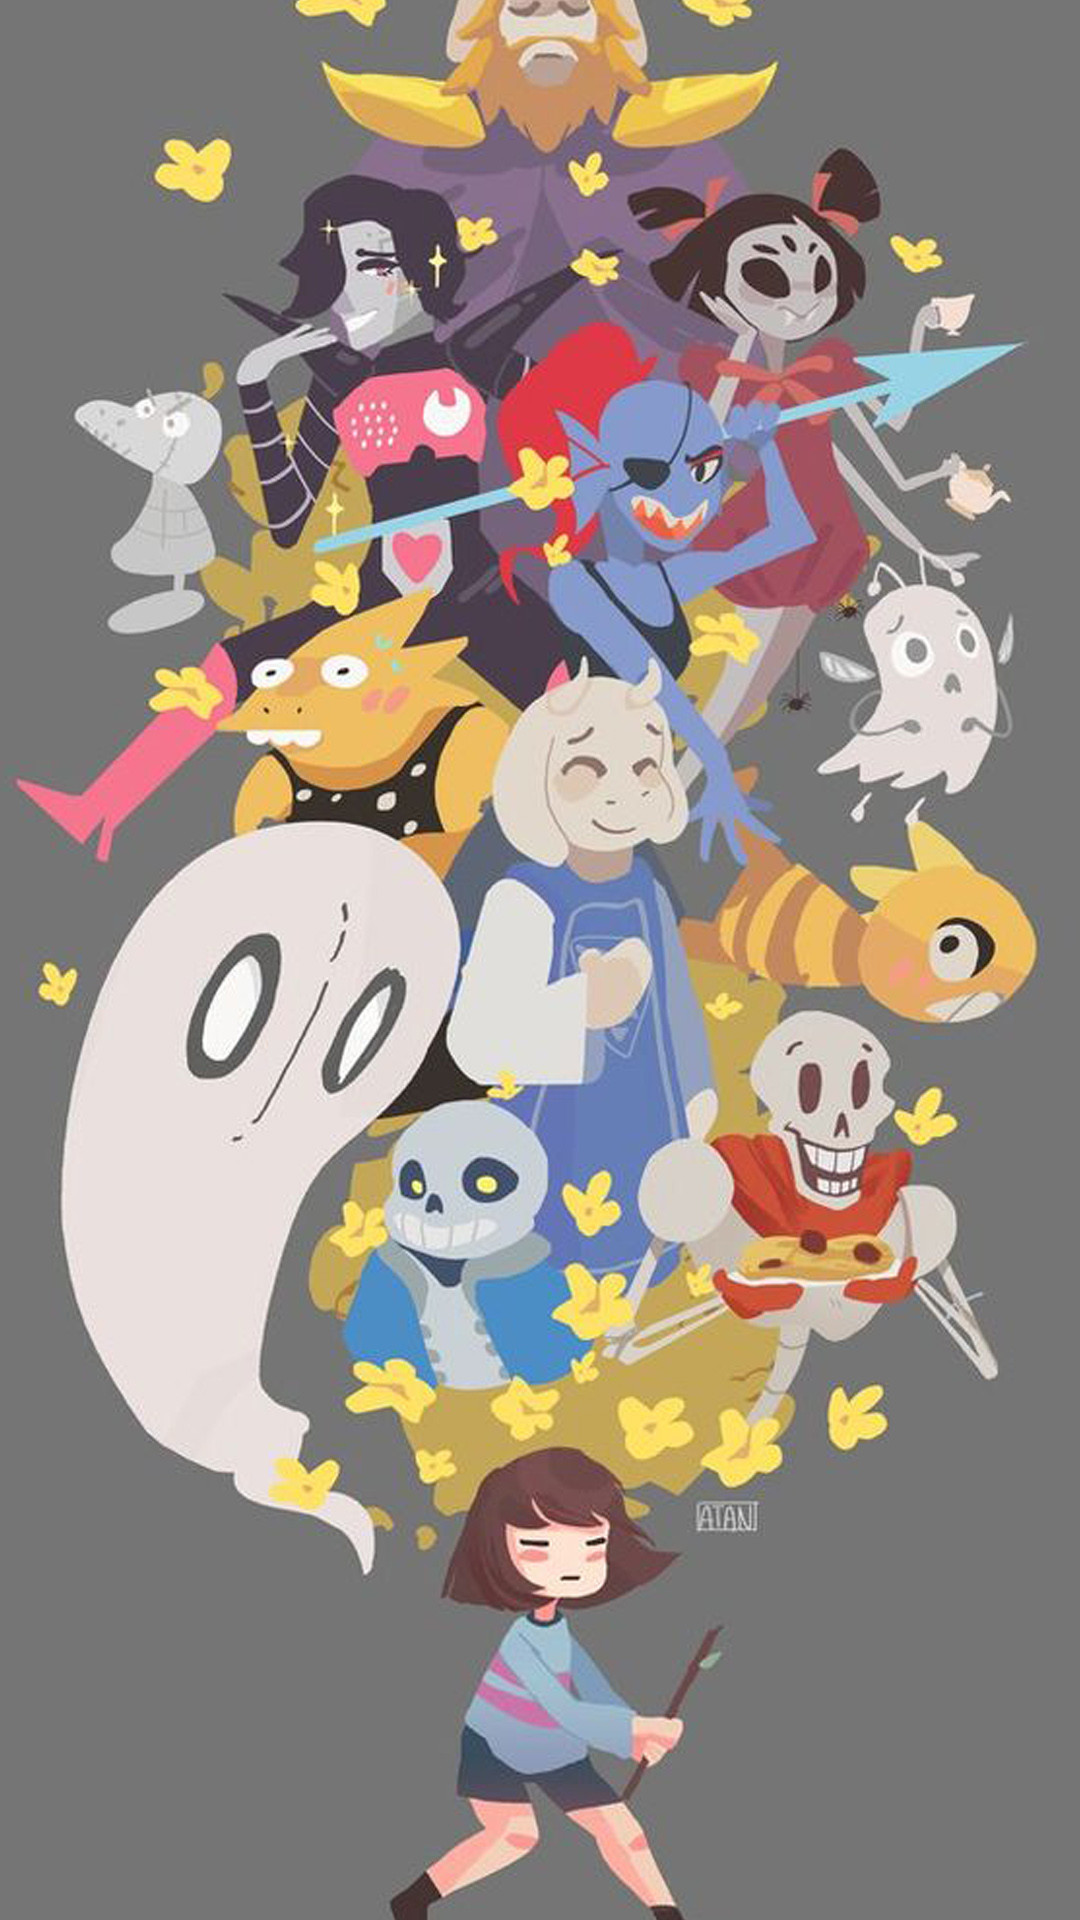 1080x1920 Undertale Cool Phone Backgrounds Iphone Wallpapers